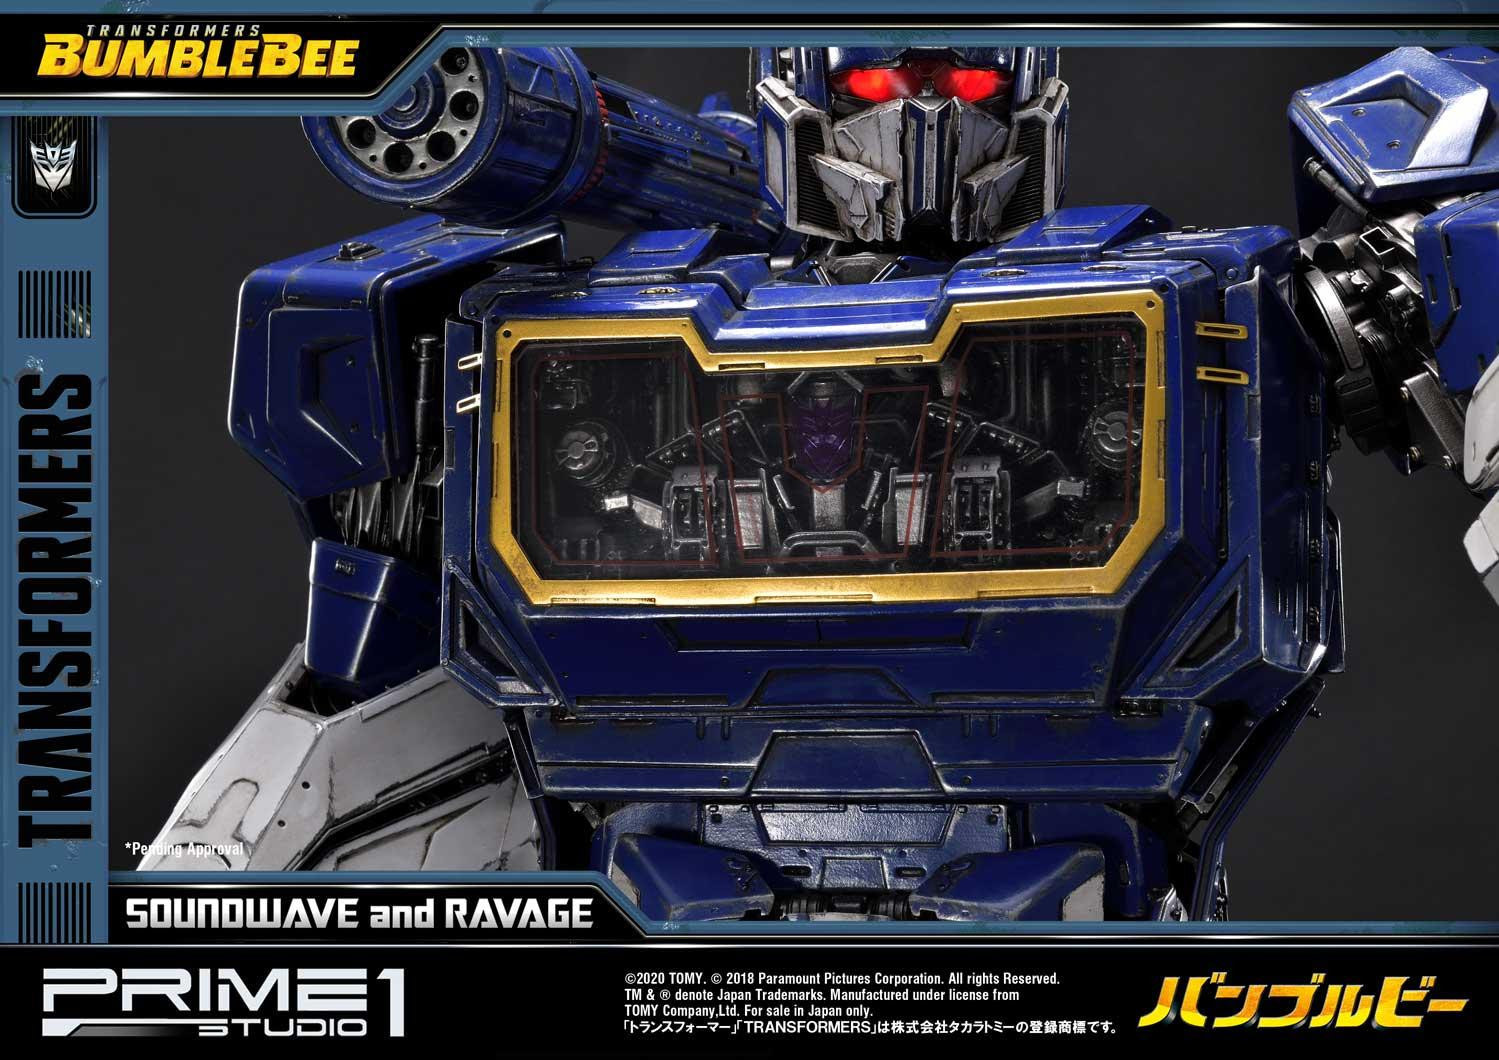 Transformers Soundwave and Ravage Get Expensive with Prime 1 Studio